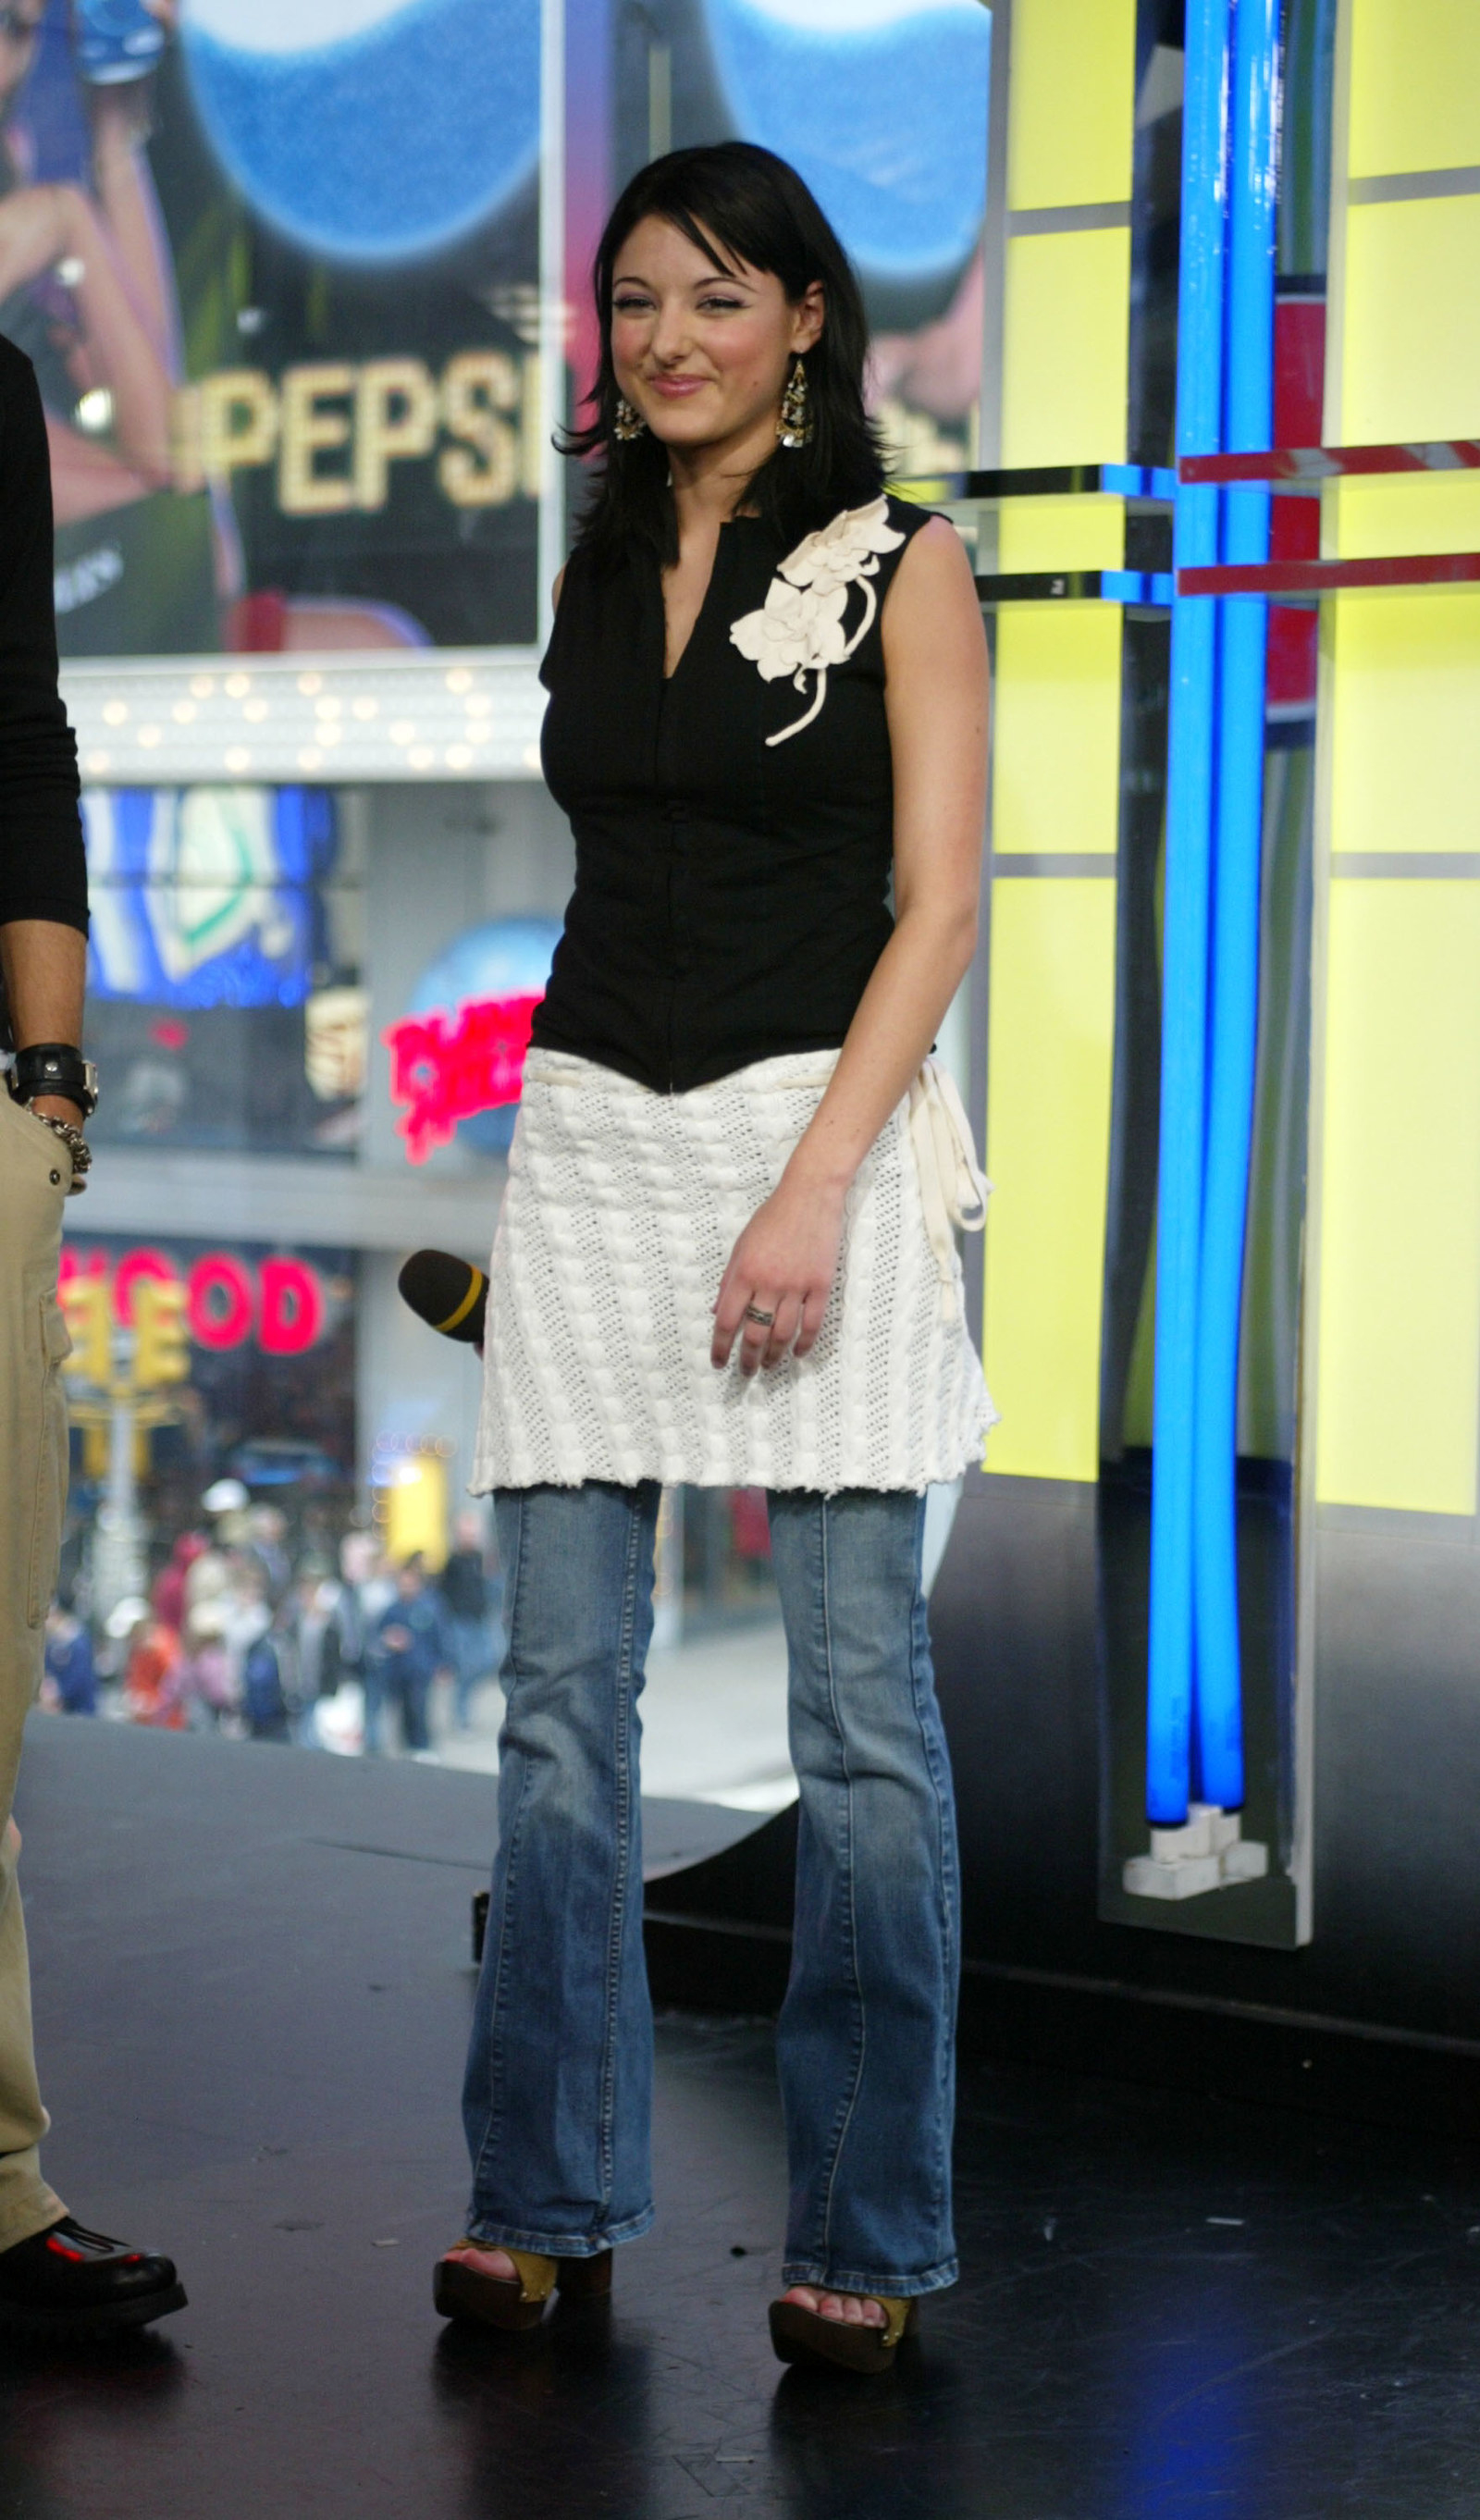 Stacie Orrico in this skirt over jeans.